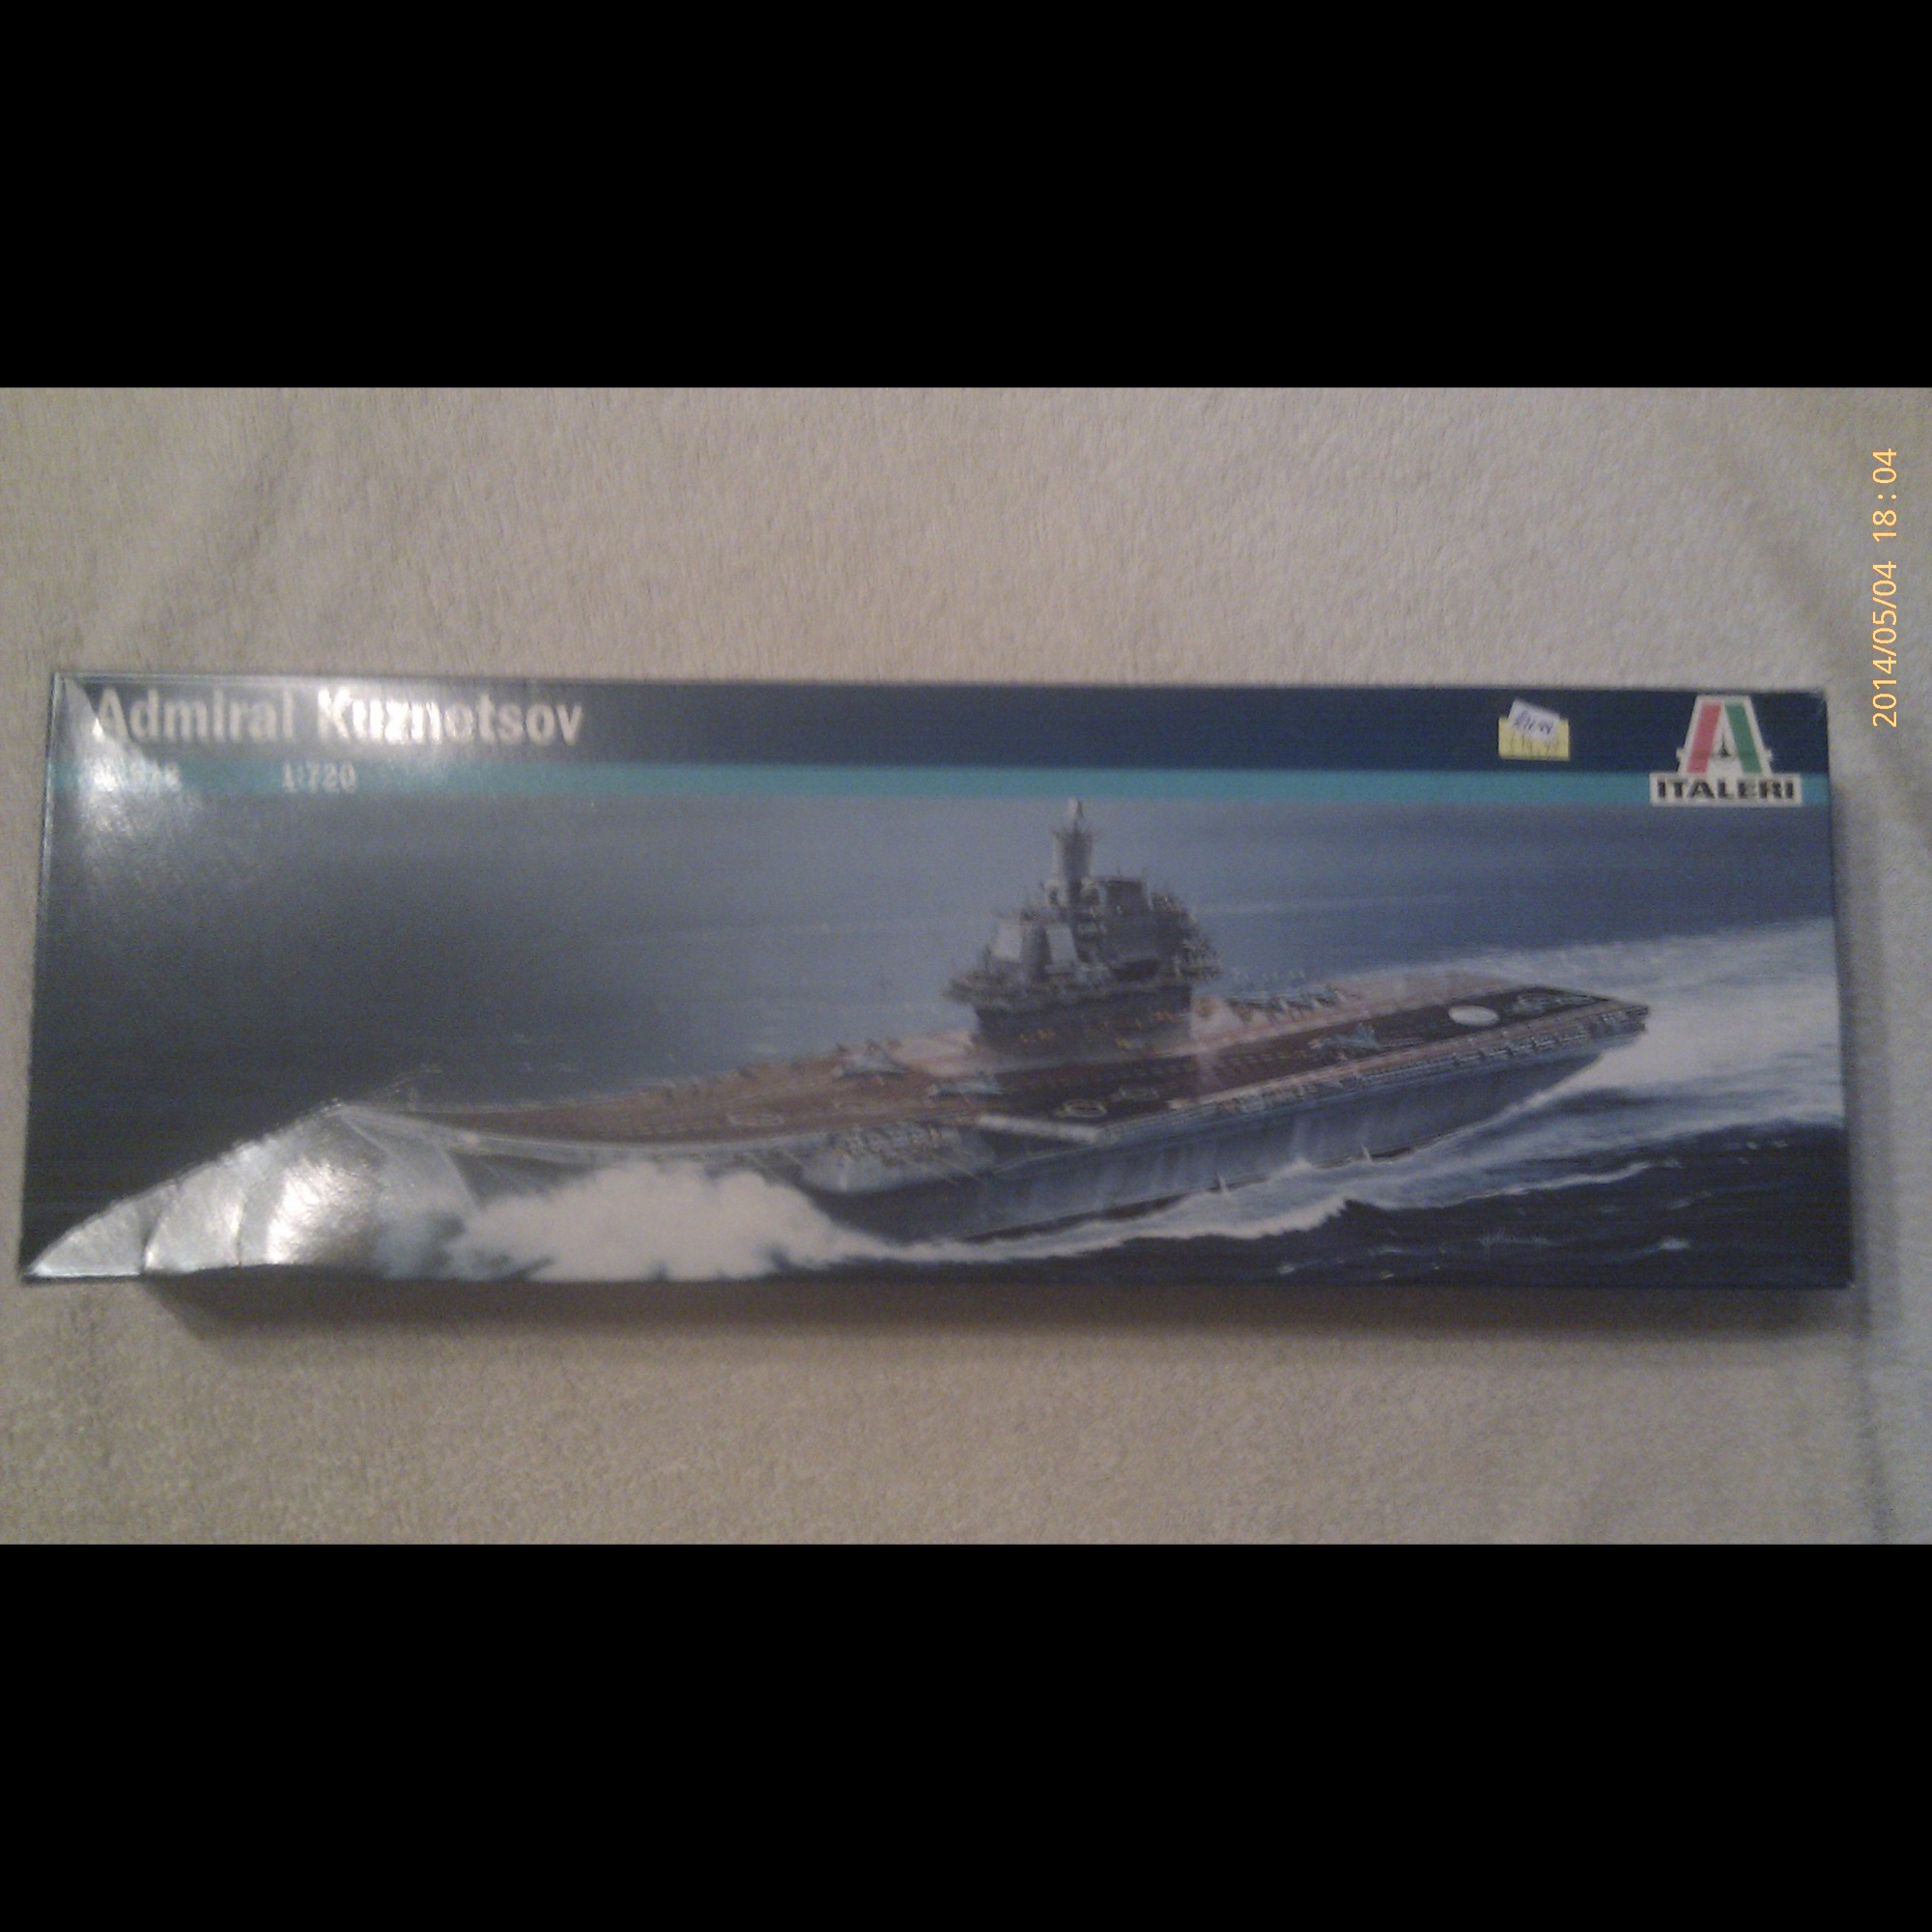 1:720 Scale - Admiral Kuznetsov Aircraft Carrier